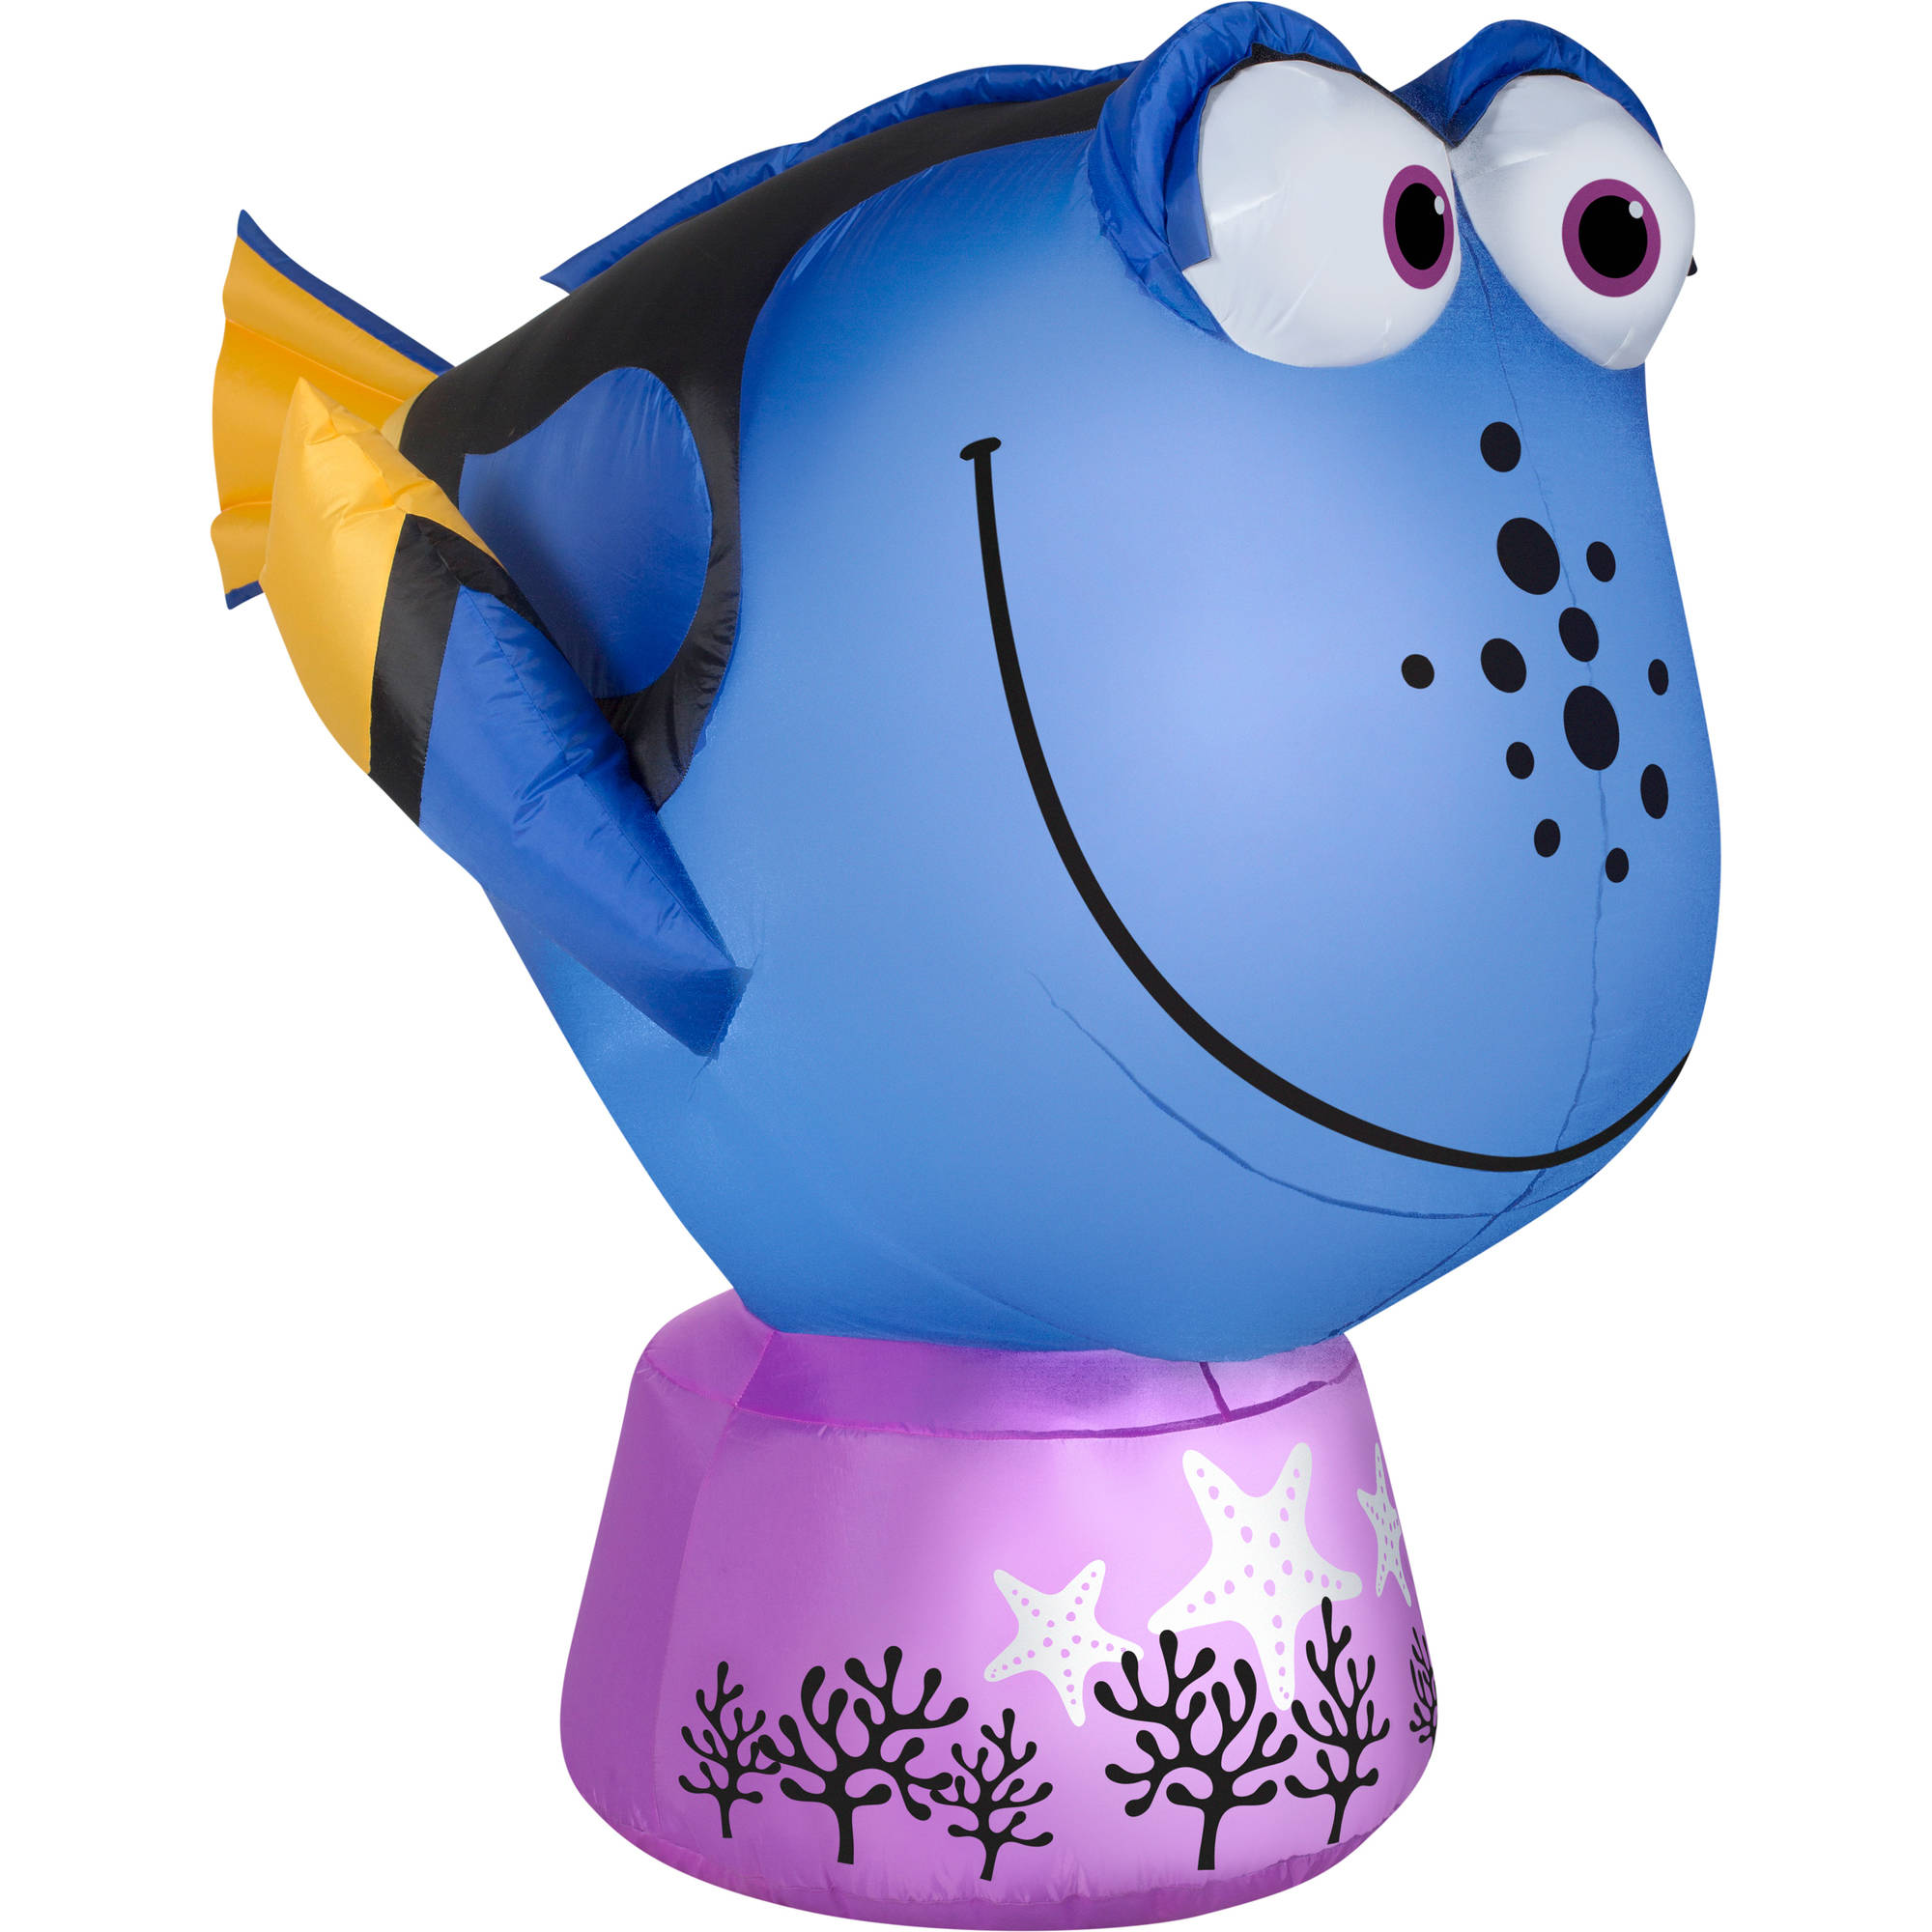 Gemmy Airblown Inflatable 3.5' X 4.5' Finding Dory Halloween Decoration